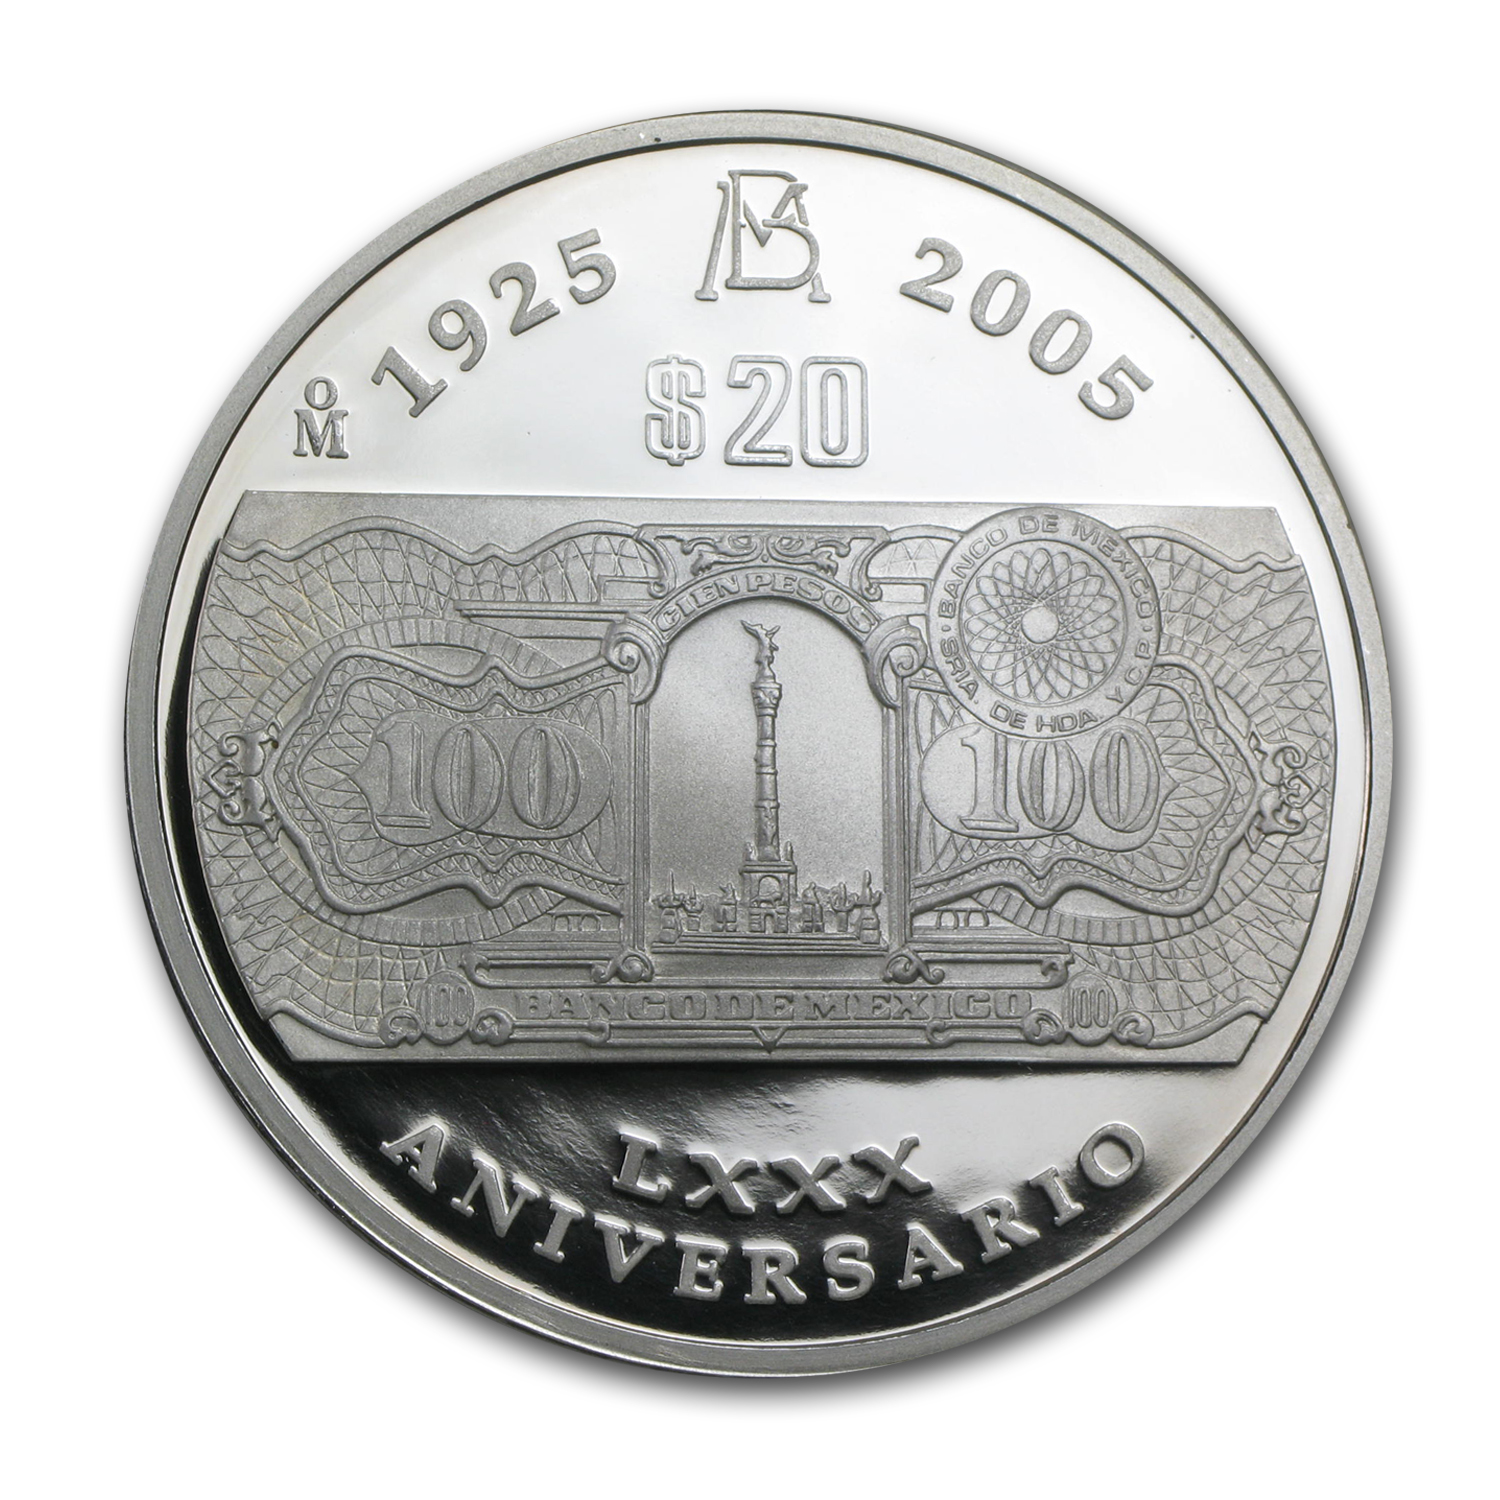 2005 Banco de México 2 oz Silver $20 Peso Proof (80th Anniv)